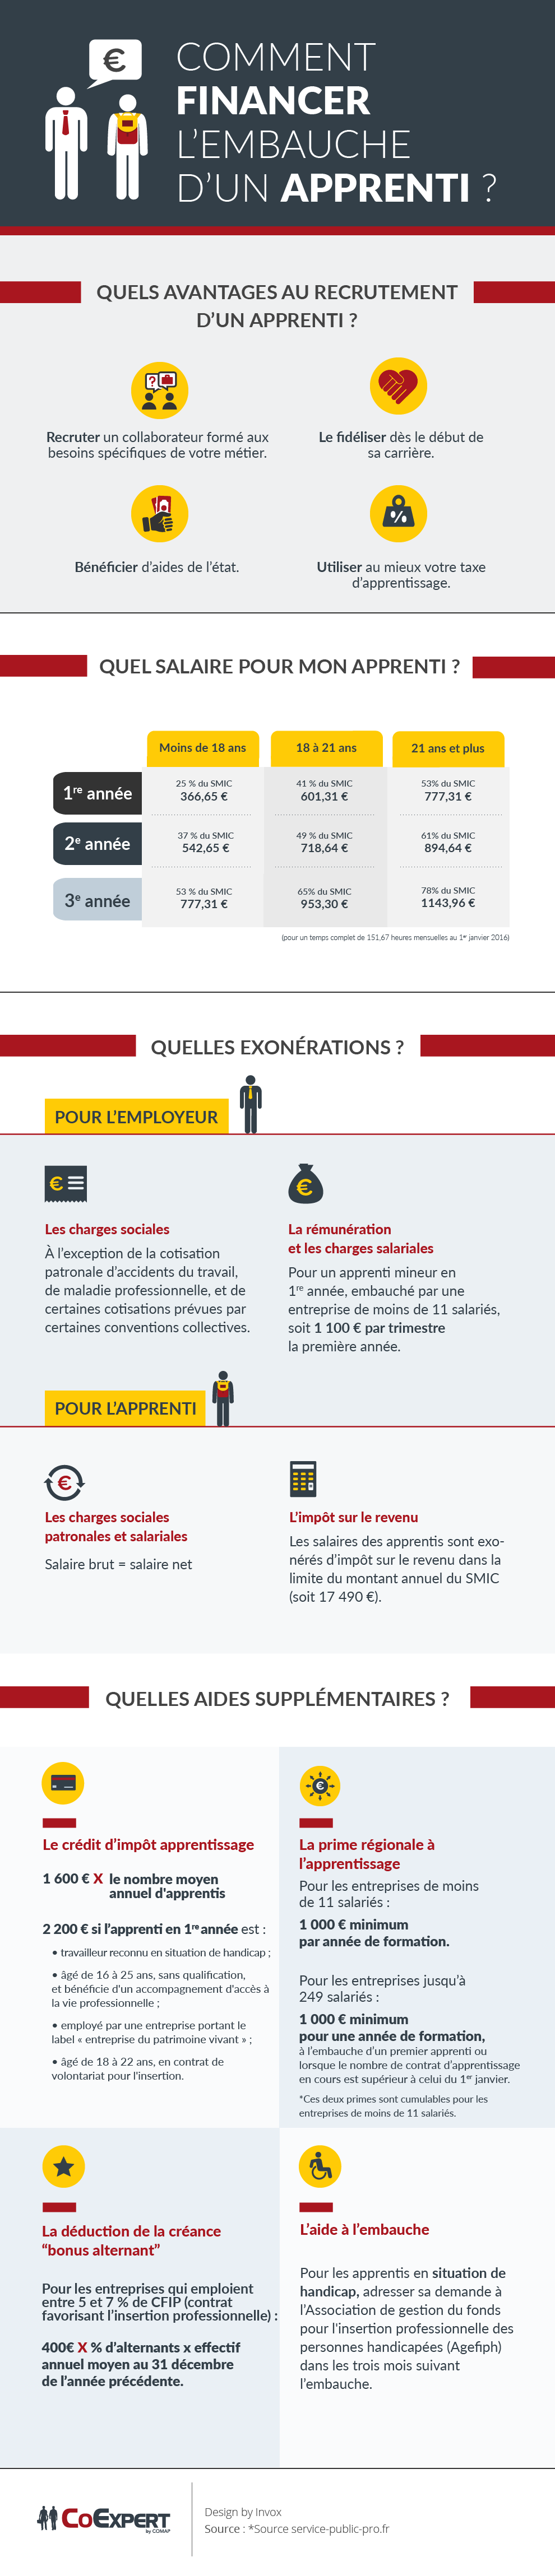 Infographie - Comment financer l'embauche d'un apprenti ?